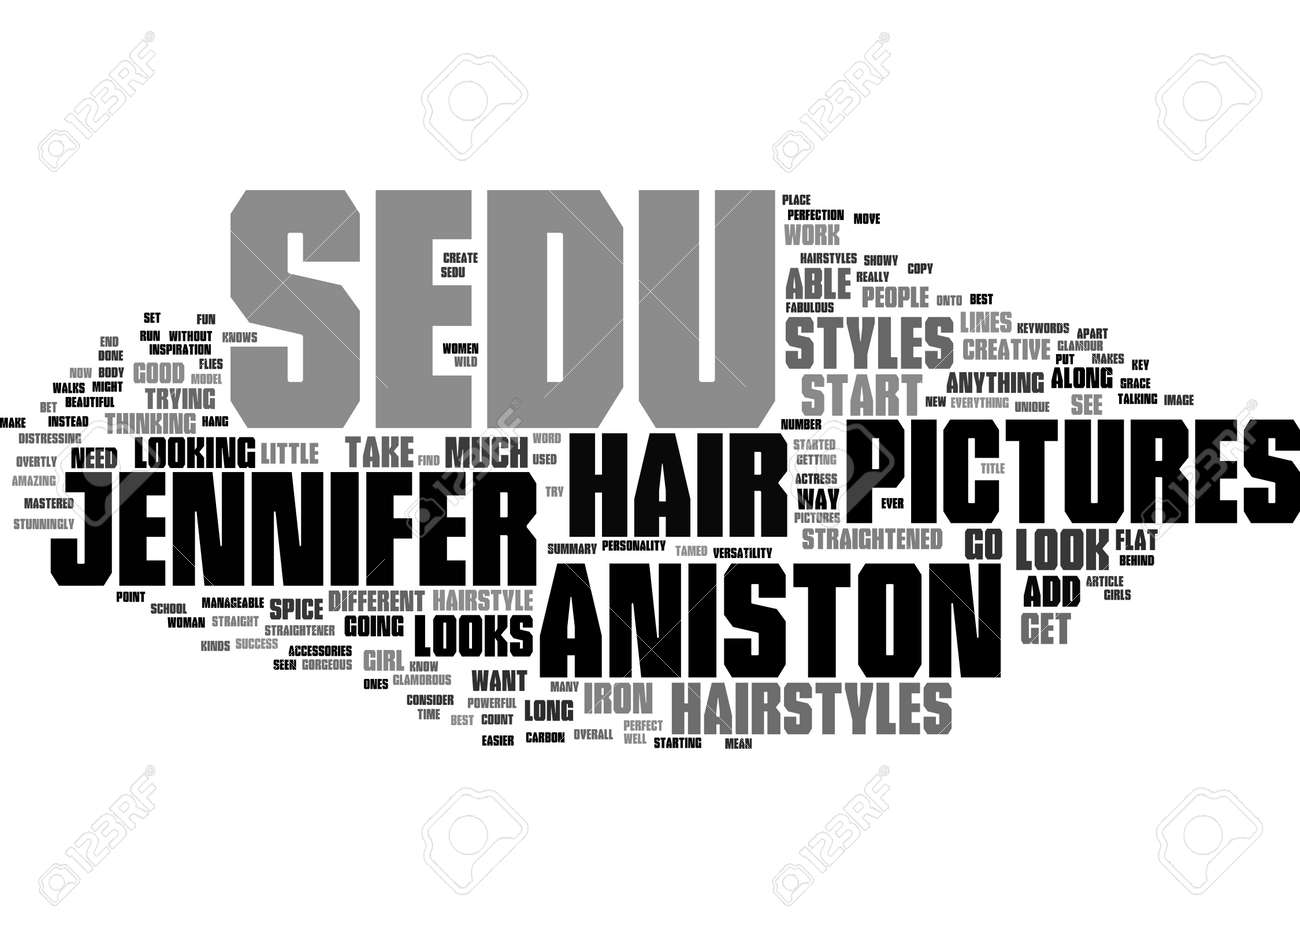 Word Cloud Summary of Jennifer Aniston s Best Sedu Hairstyles Pictures Article - 160186343